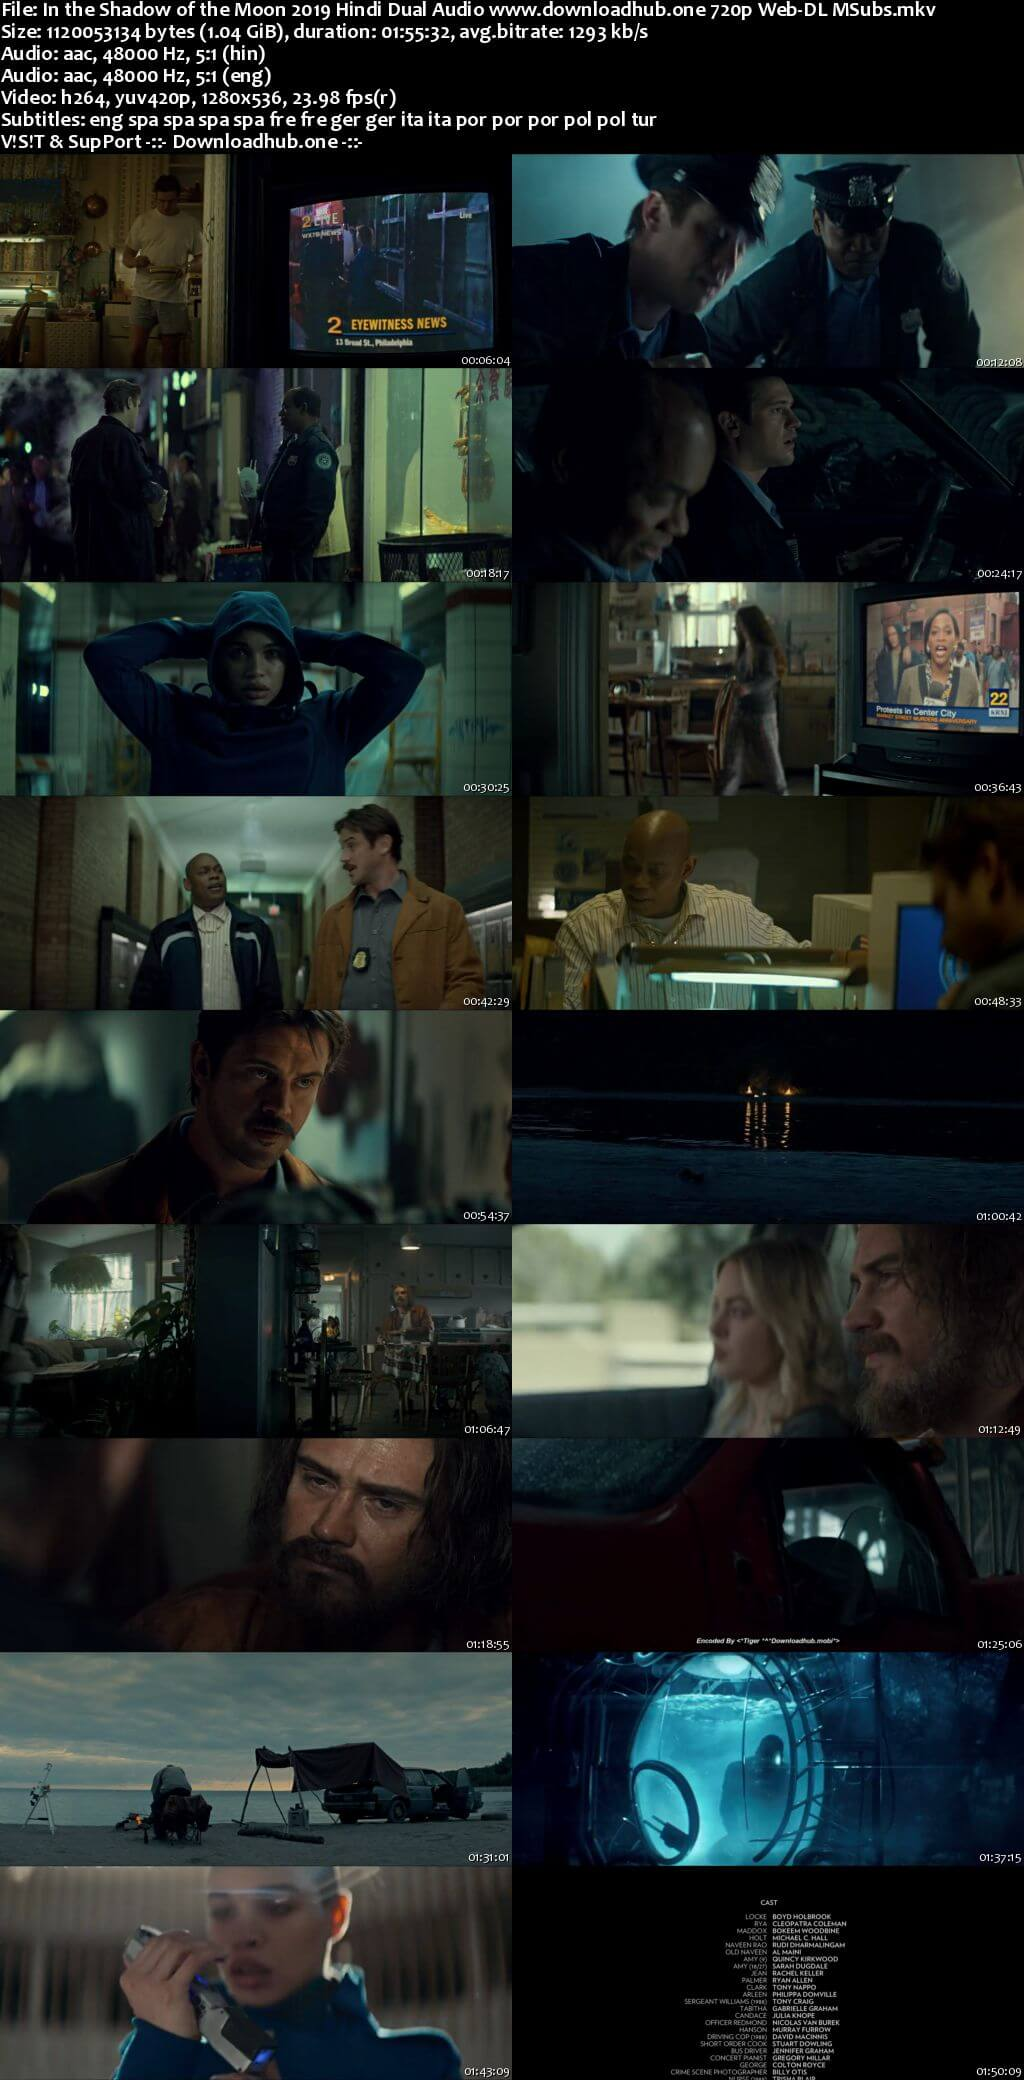 In the Shadow of the Moon 2019 Hindi Dual Audio 720p Web-DL MSubs